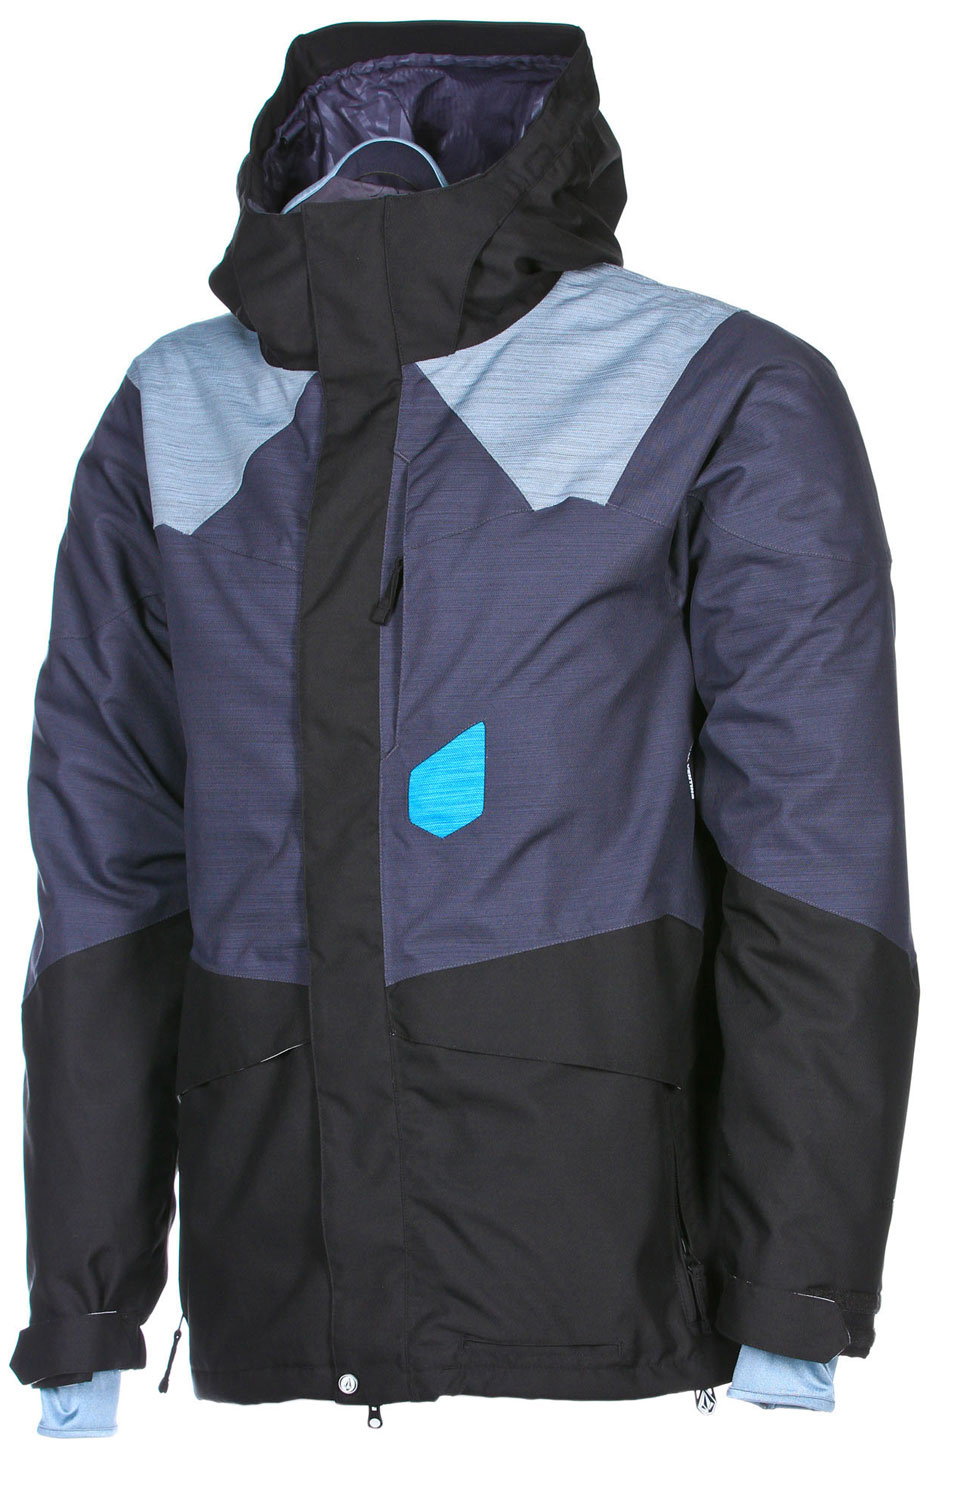 "Snowboard Key Features of the Volcom Gigi Ruf ""T.D.S"" Snowboard Jacket: 15,000mm Waterproof 10,000gm Breathability V-Science 2 Layer Shell *V-Science 2-Tone Twill ""T.D.S"" 2-Layer Lining System 35gm Poly Fill Baffles Fully Taped Seams Zip Tech Jacket to Pant Interface Face Tech 2-Way Adjustable Hidden Toggle Quick Cinch Hood Peripheral Hood Adjustment Goggle Clips Super Suede Chin Guard Mesh Lined Zippered Vents Stretch Adjustable Powder Skirt w/ Stash Pocket Powder Skirt Jacket to Pant Interface V-Science 2 Way Cuff System Lycra Hand Gaitors Brushed Tricot Lined Handwarmer Pockets Pocket Access Hem Cinch Goggle Pocket Noise Pocket Stone Ticket Ring Whistle Zipper Pull Pull Down Pass Pocket Stone Screen On Hood - $207.95"